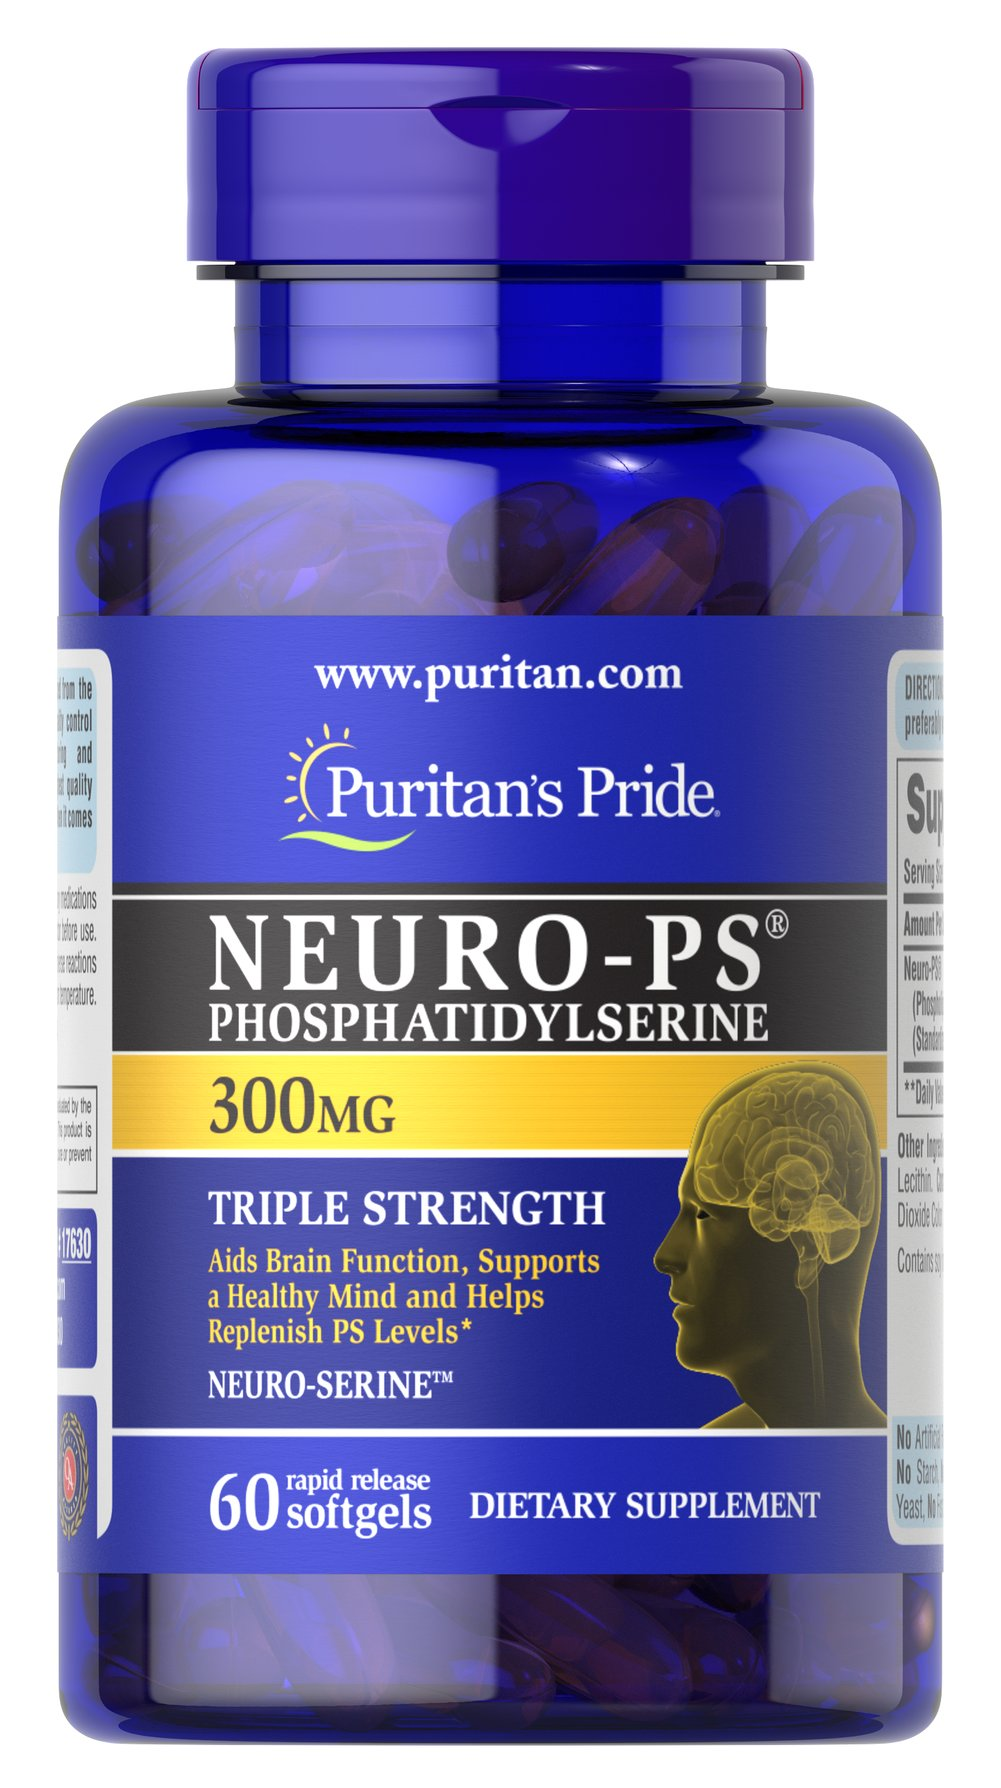 Neuro-PS 300 mg (Phosphatidylserine) <p>Phosphatidylserine (PS):</p> <p>Aids Brain Function**</p><p>Supports a Healthy Mind**</p><p>Helps Replenish PS levels**</p>   <p>Very limited and preliminary scientific research suggests that PS may reduce the risk of cognitive dysfunction in the elderly. The FDA concludes that there is  little scientific evidence supporting this claim.</p><p>Available in 100, 200 and 300 milligram potencies